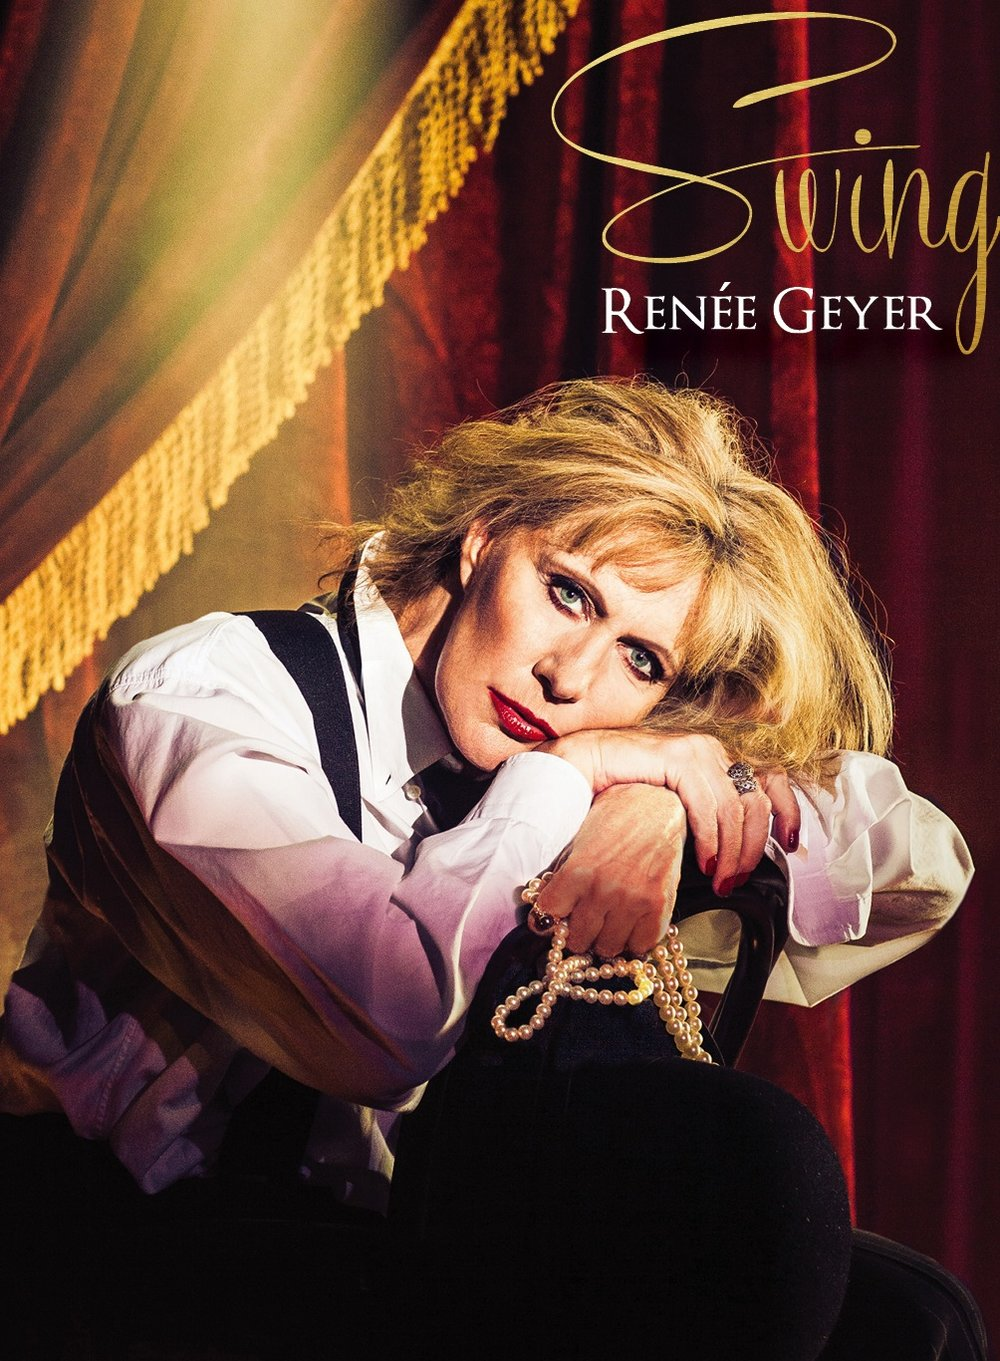 Renee-Geyer-Swing.jpg